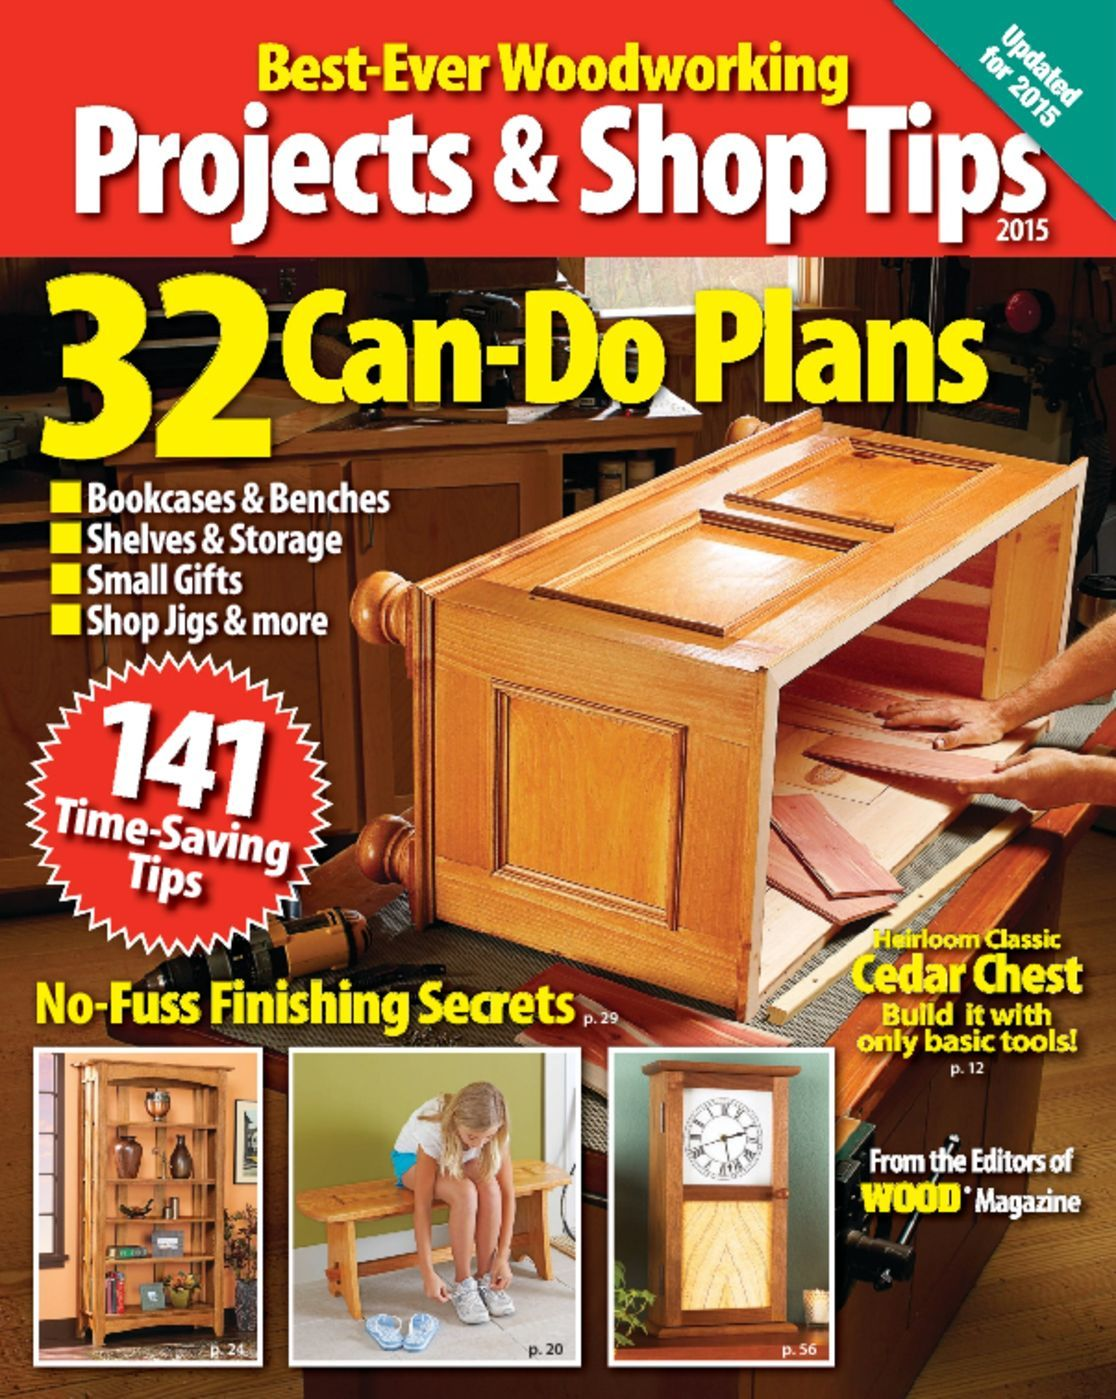 Best Ever Projects Shop Tips 2015 Magazine Digital